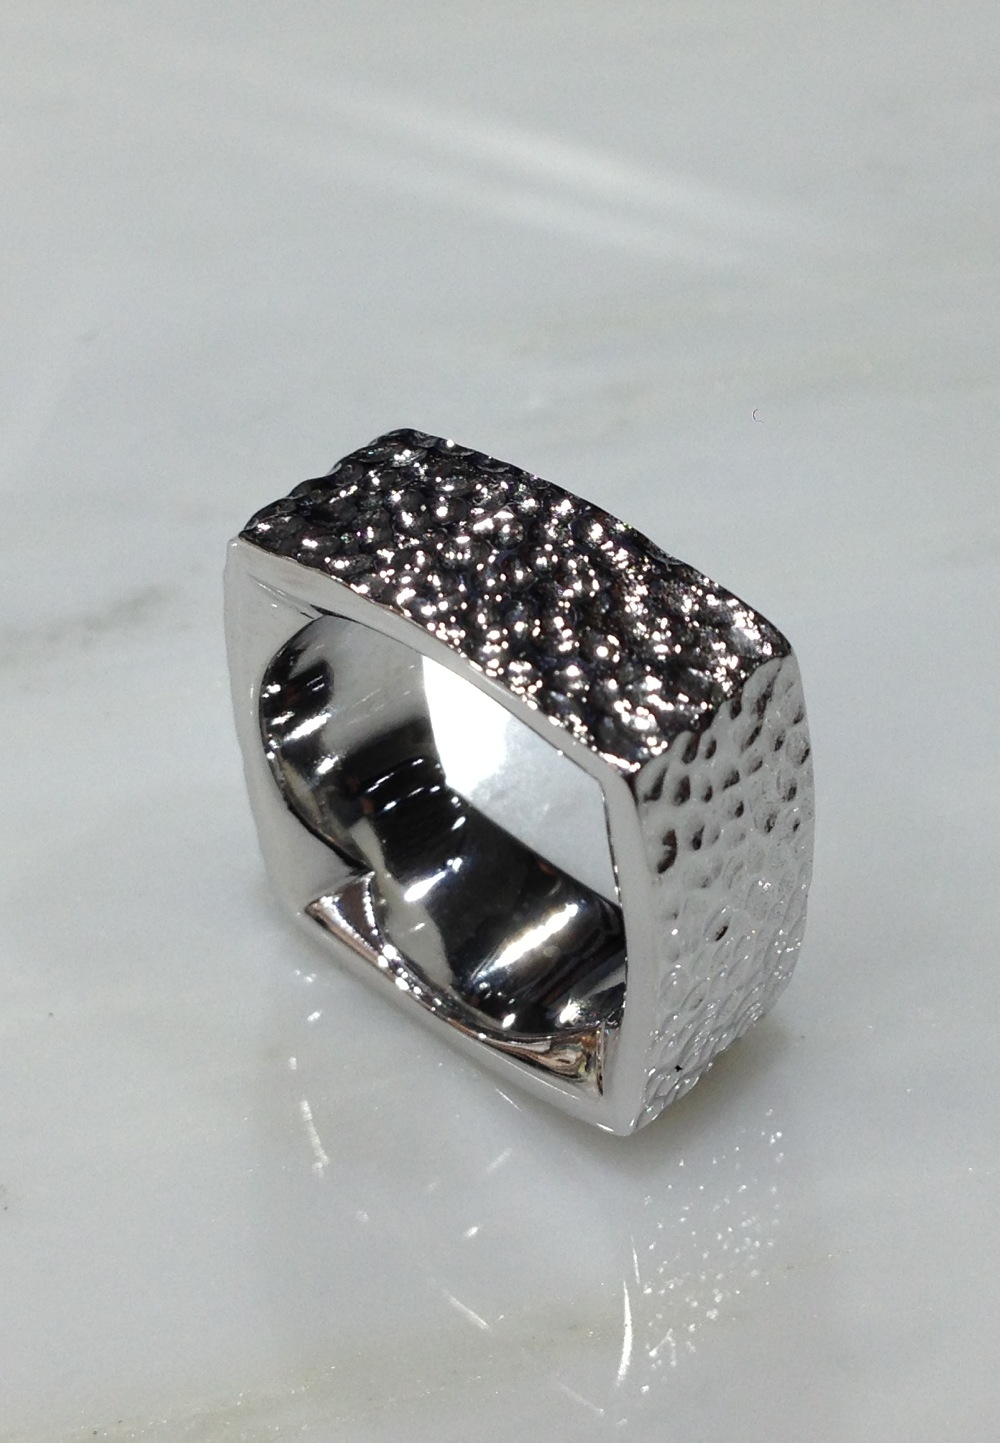 unique-modern-textured-sleek-design-gents-band-mens-ring-craft-revival-jewelry-store-grand-rapids